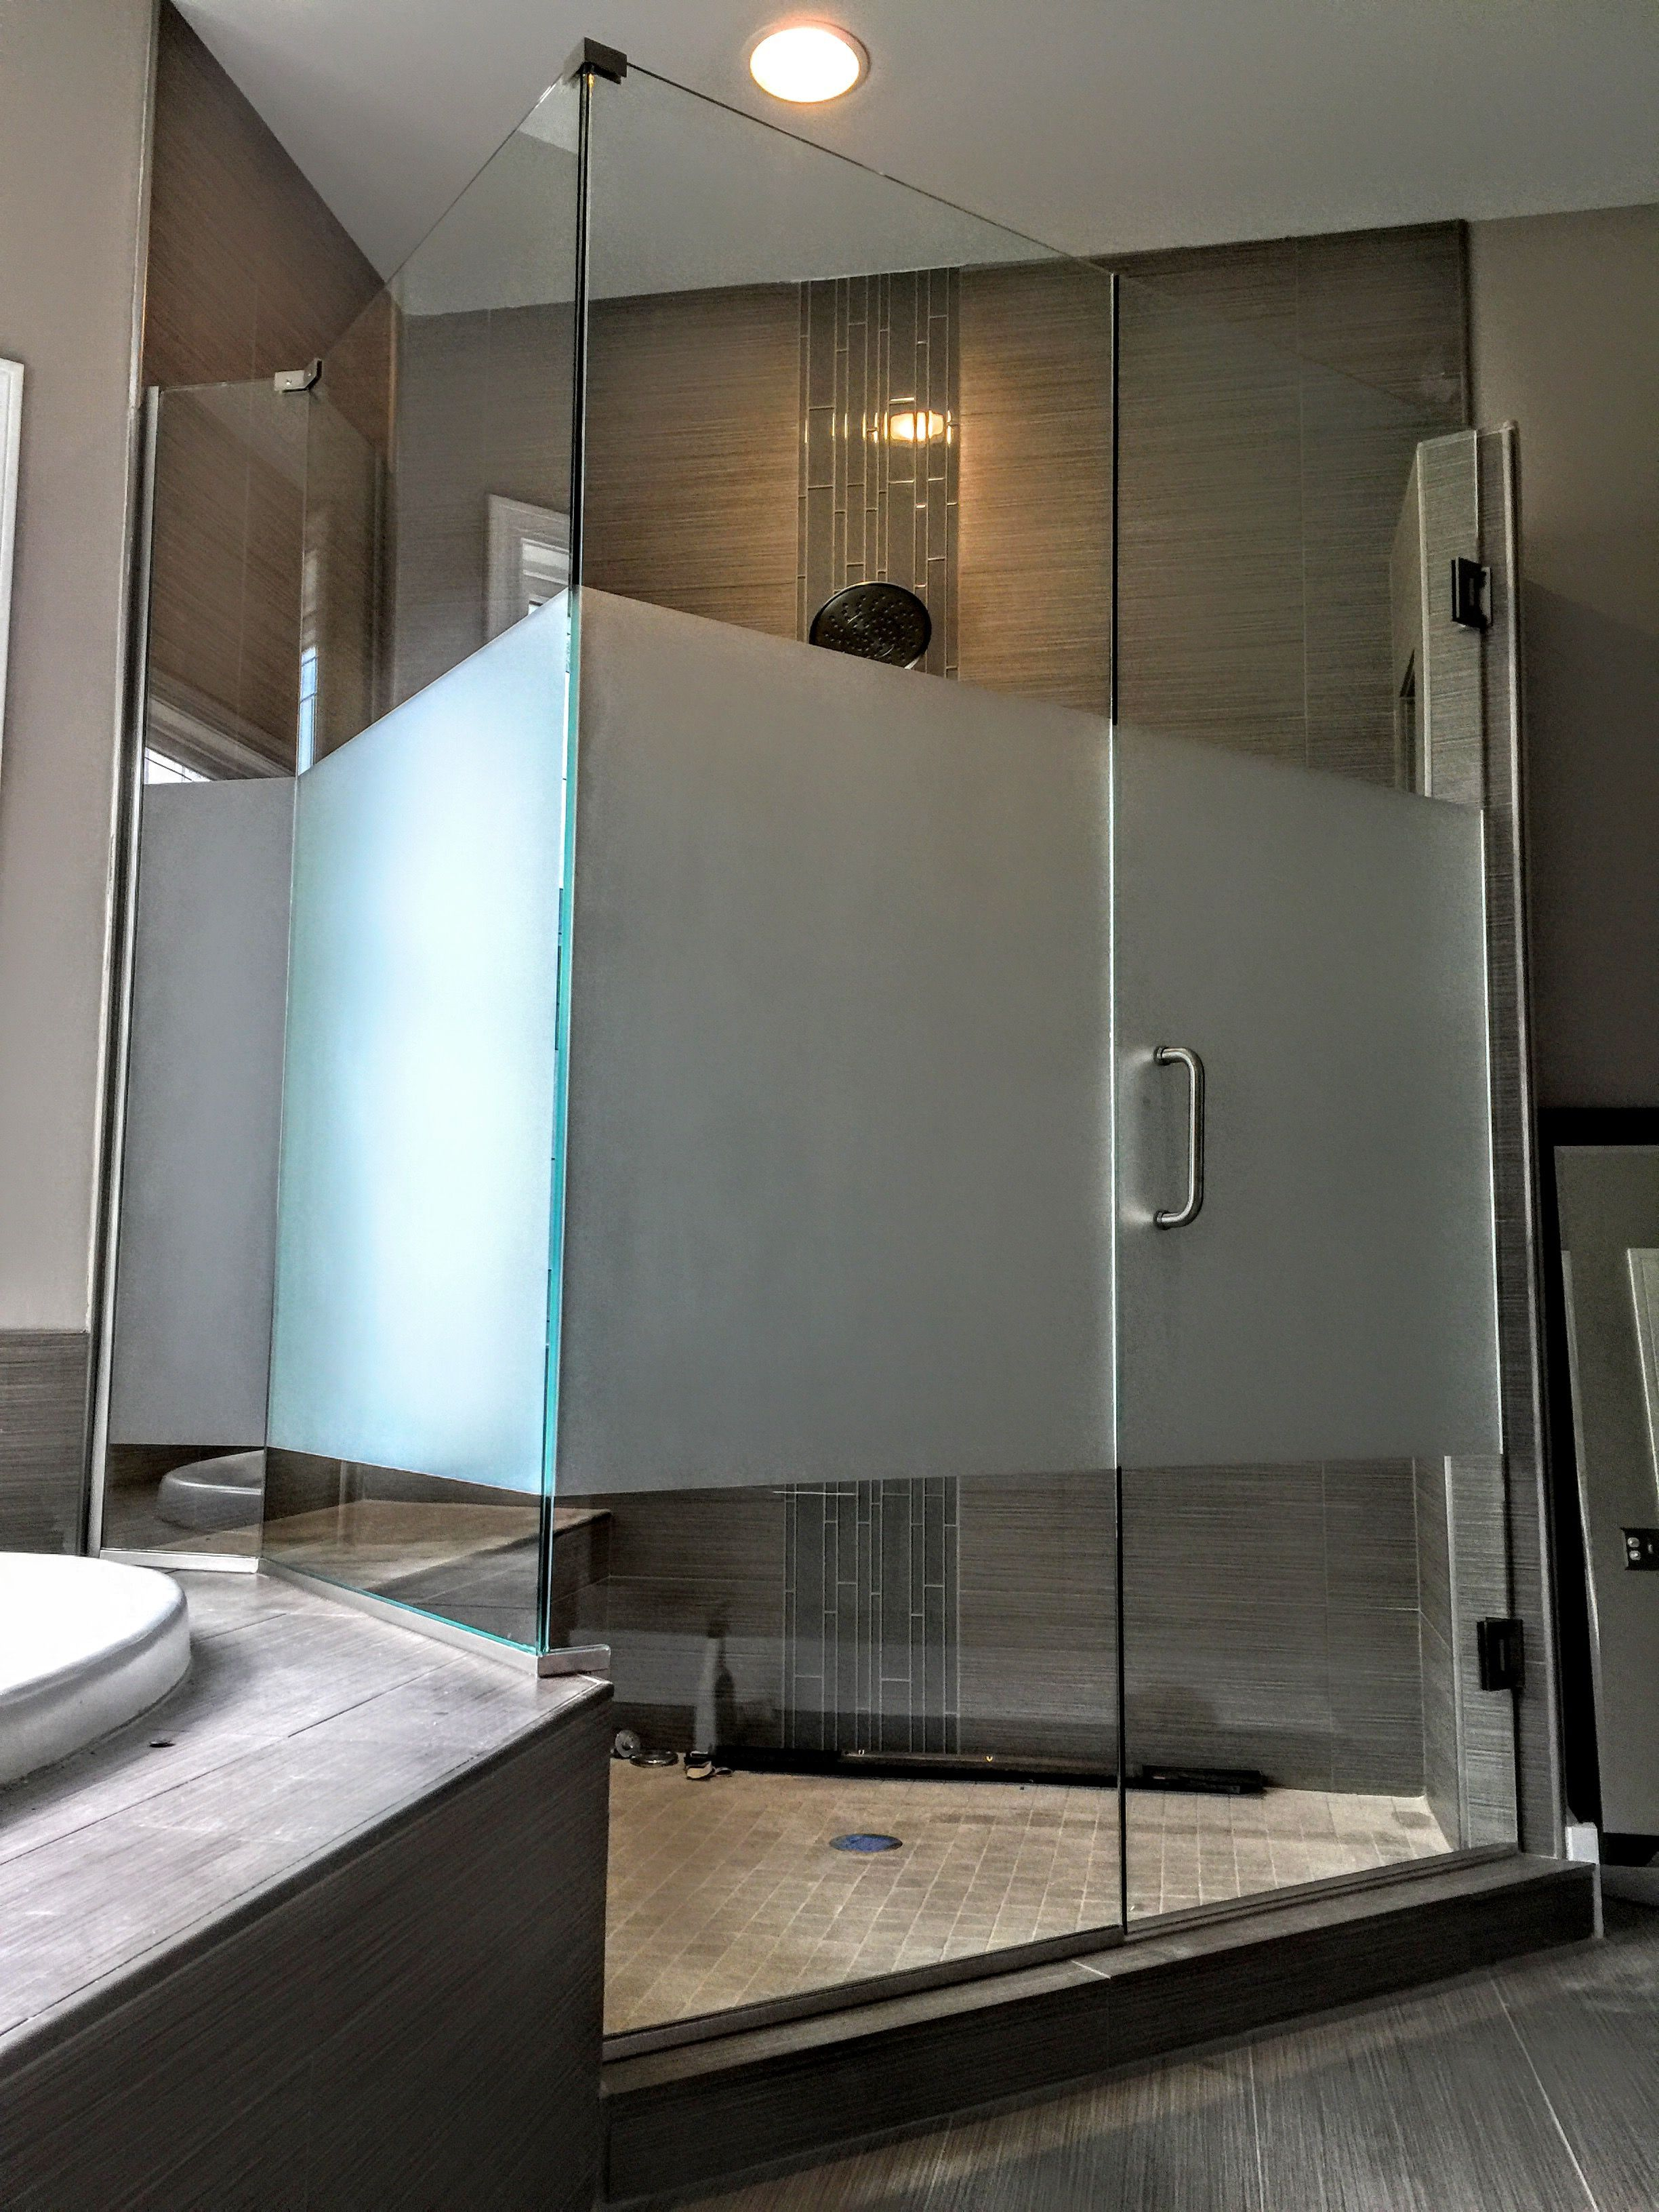 Etched Glass Shower Doors Give Your Shower A Little Privacy With